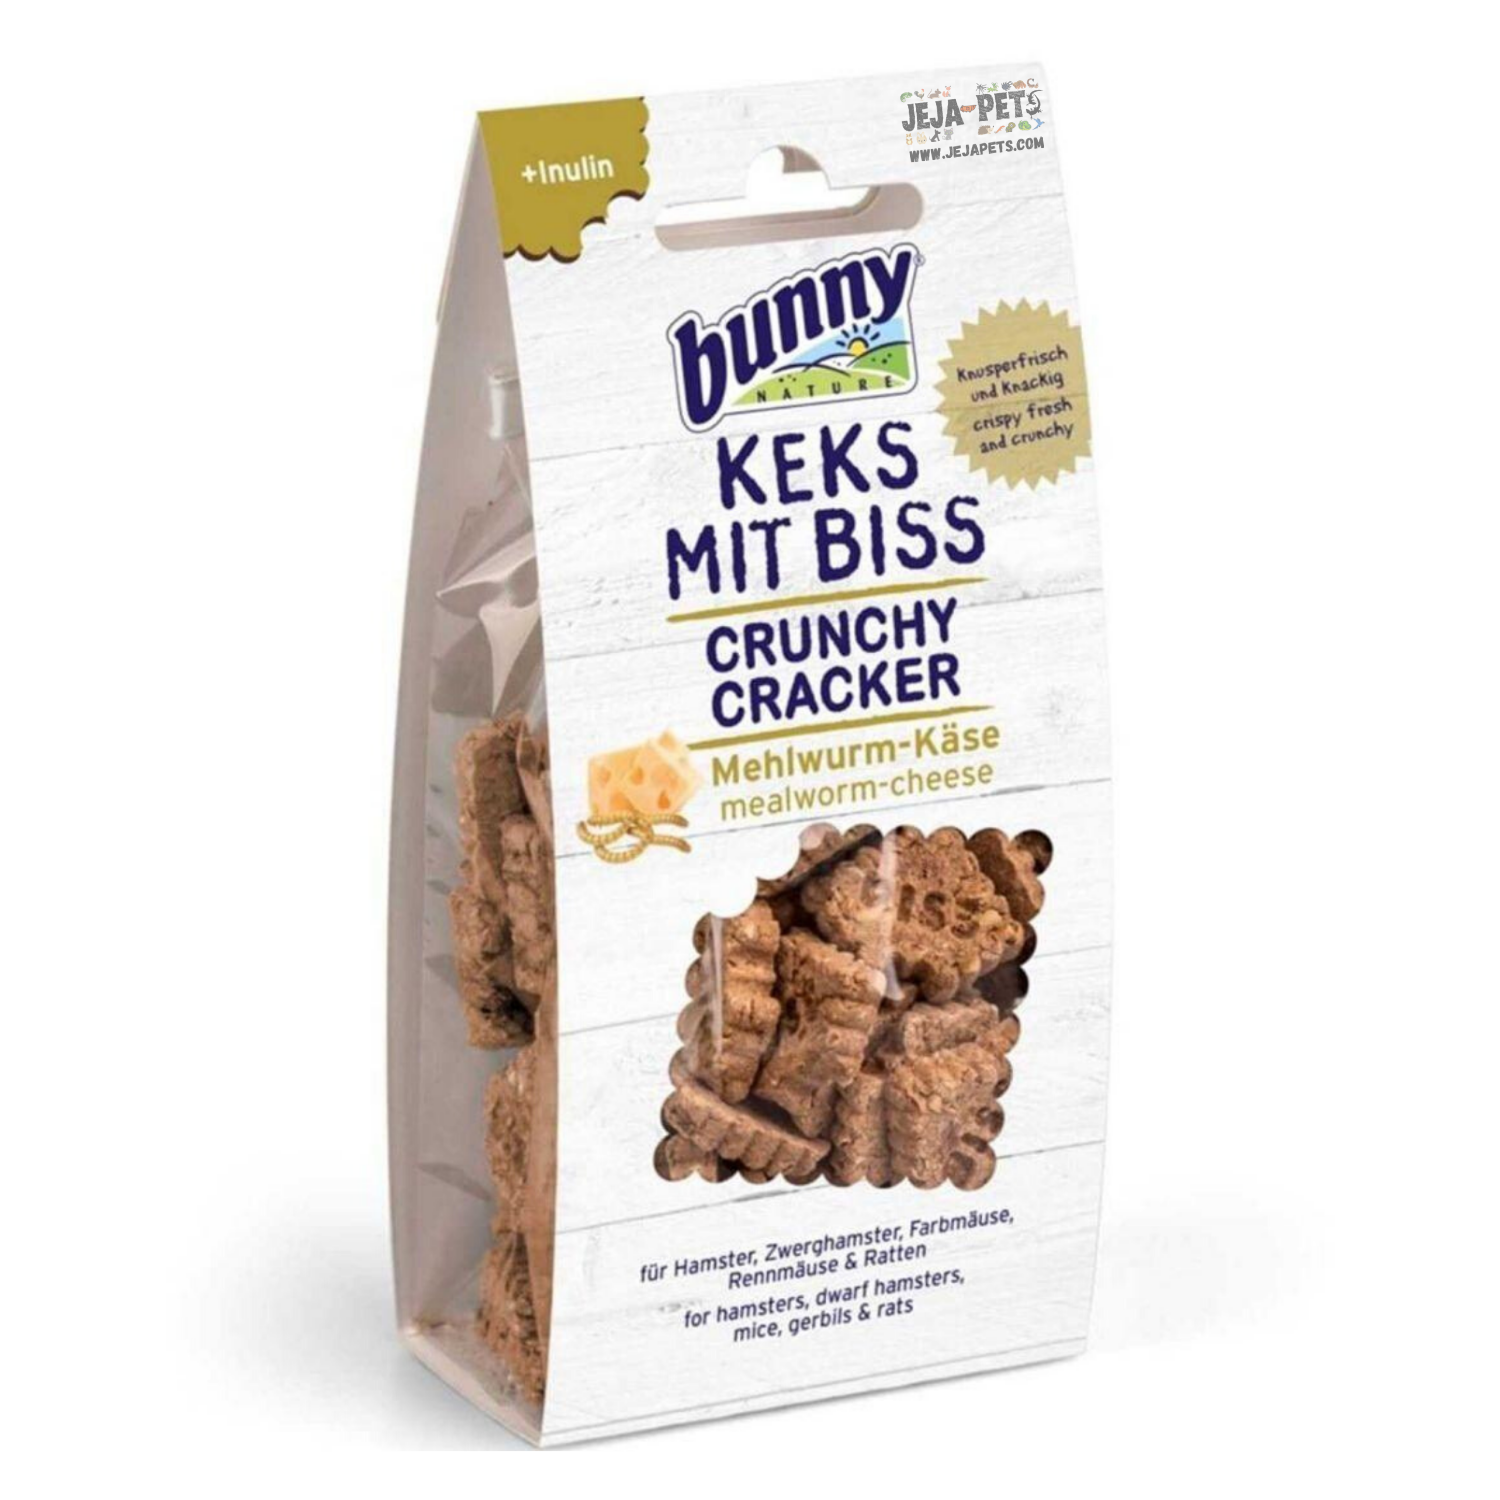 Bunny Nature Crunchy Cracker (Mealworms and Cheese) - 50g